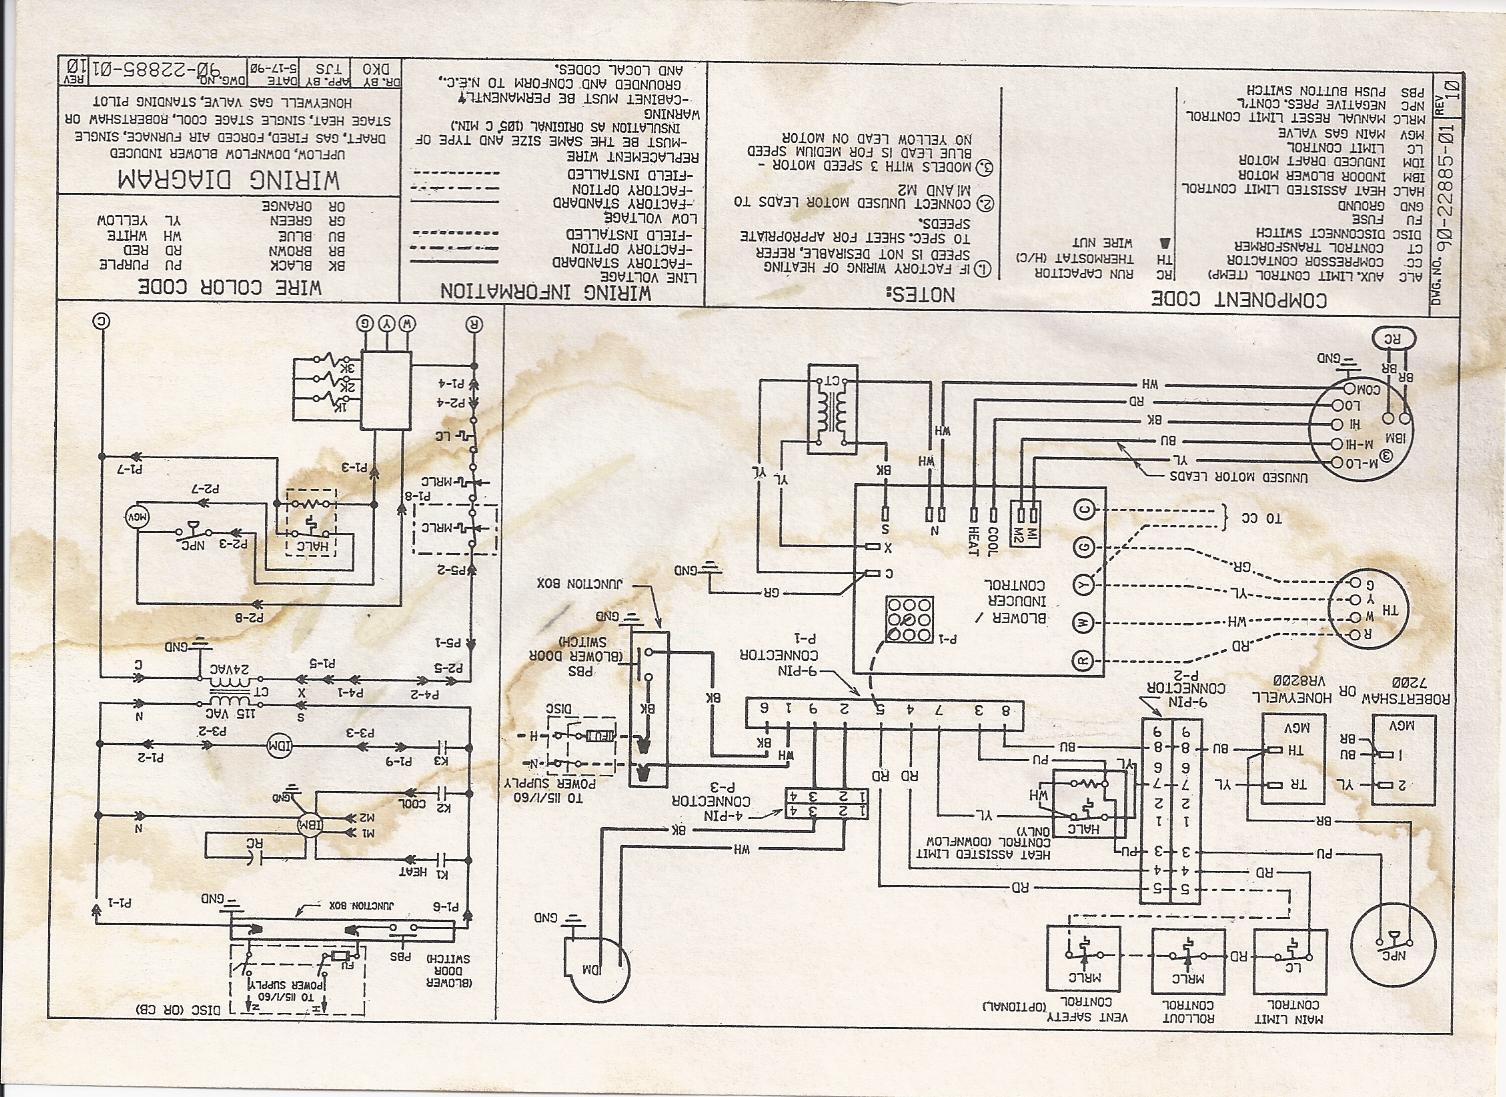 [SCHEMATICS_4FD]  CY_5294] Heat Pump Control Wiring Diagram Get Free Image About Wiring  Diagram Download Diagram | Intertherm Diagram Electric Wiring Furnace A793523 |  | Eumqu Stic Subc Mentra Oper Etic Hylec Astic Anist Xolia Mohammedshrine  Librar Wiring 101